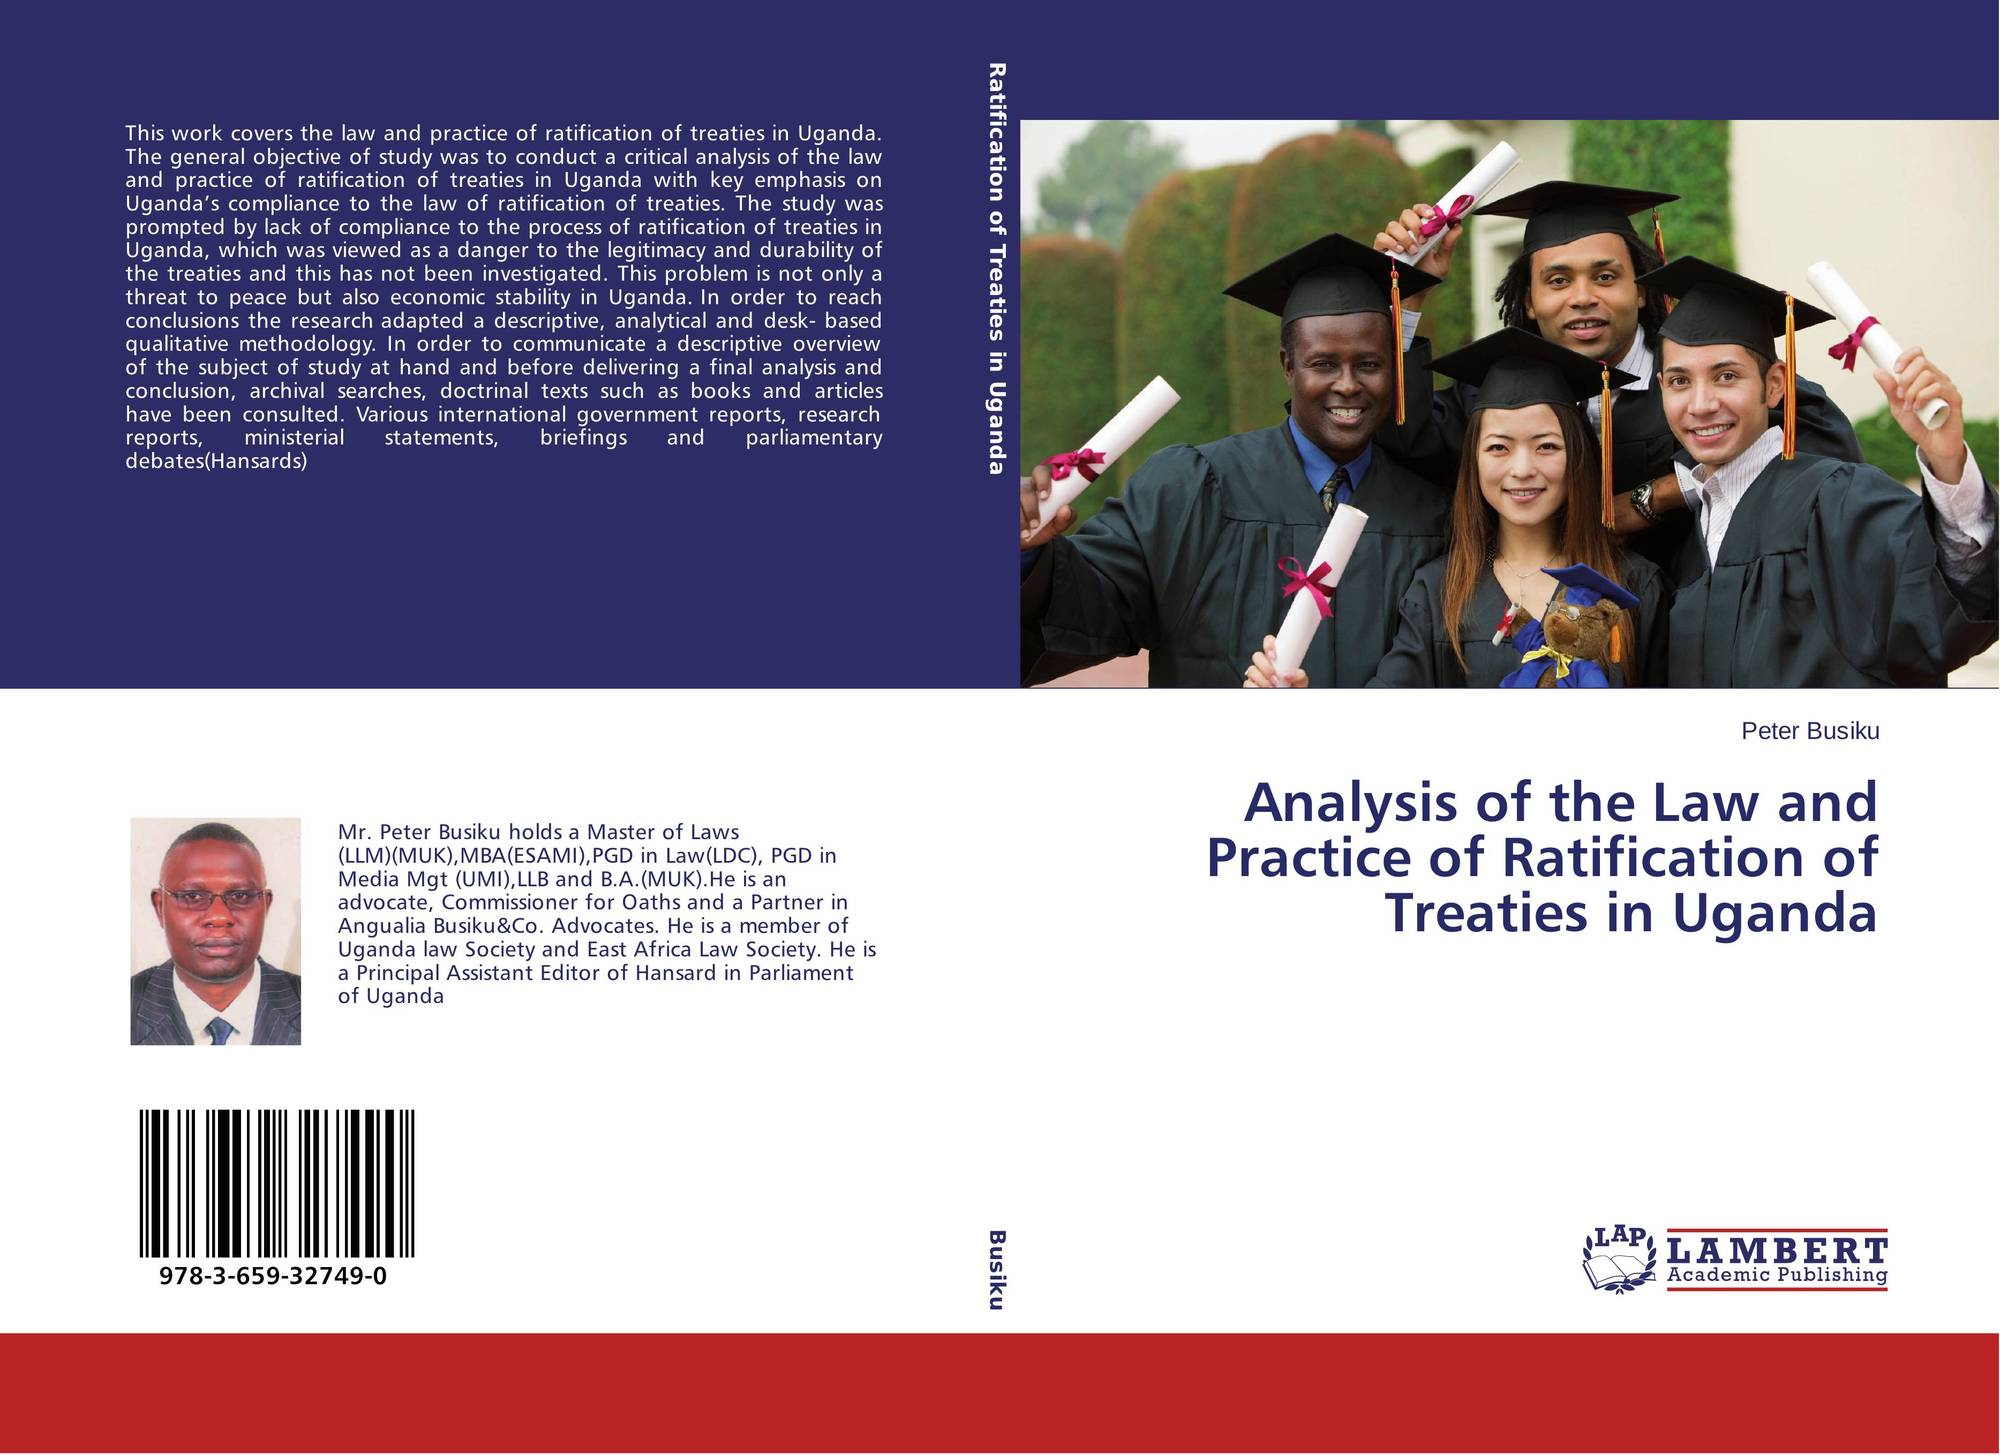 tesol case study Teachers' voices in program evaluation and improvement: a case 00006-1 teachers' voices in program evaluation and improvement: a case study of a tesol.